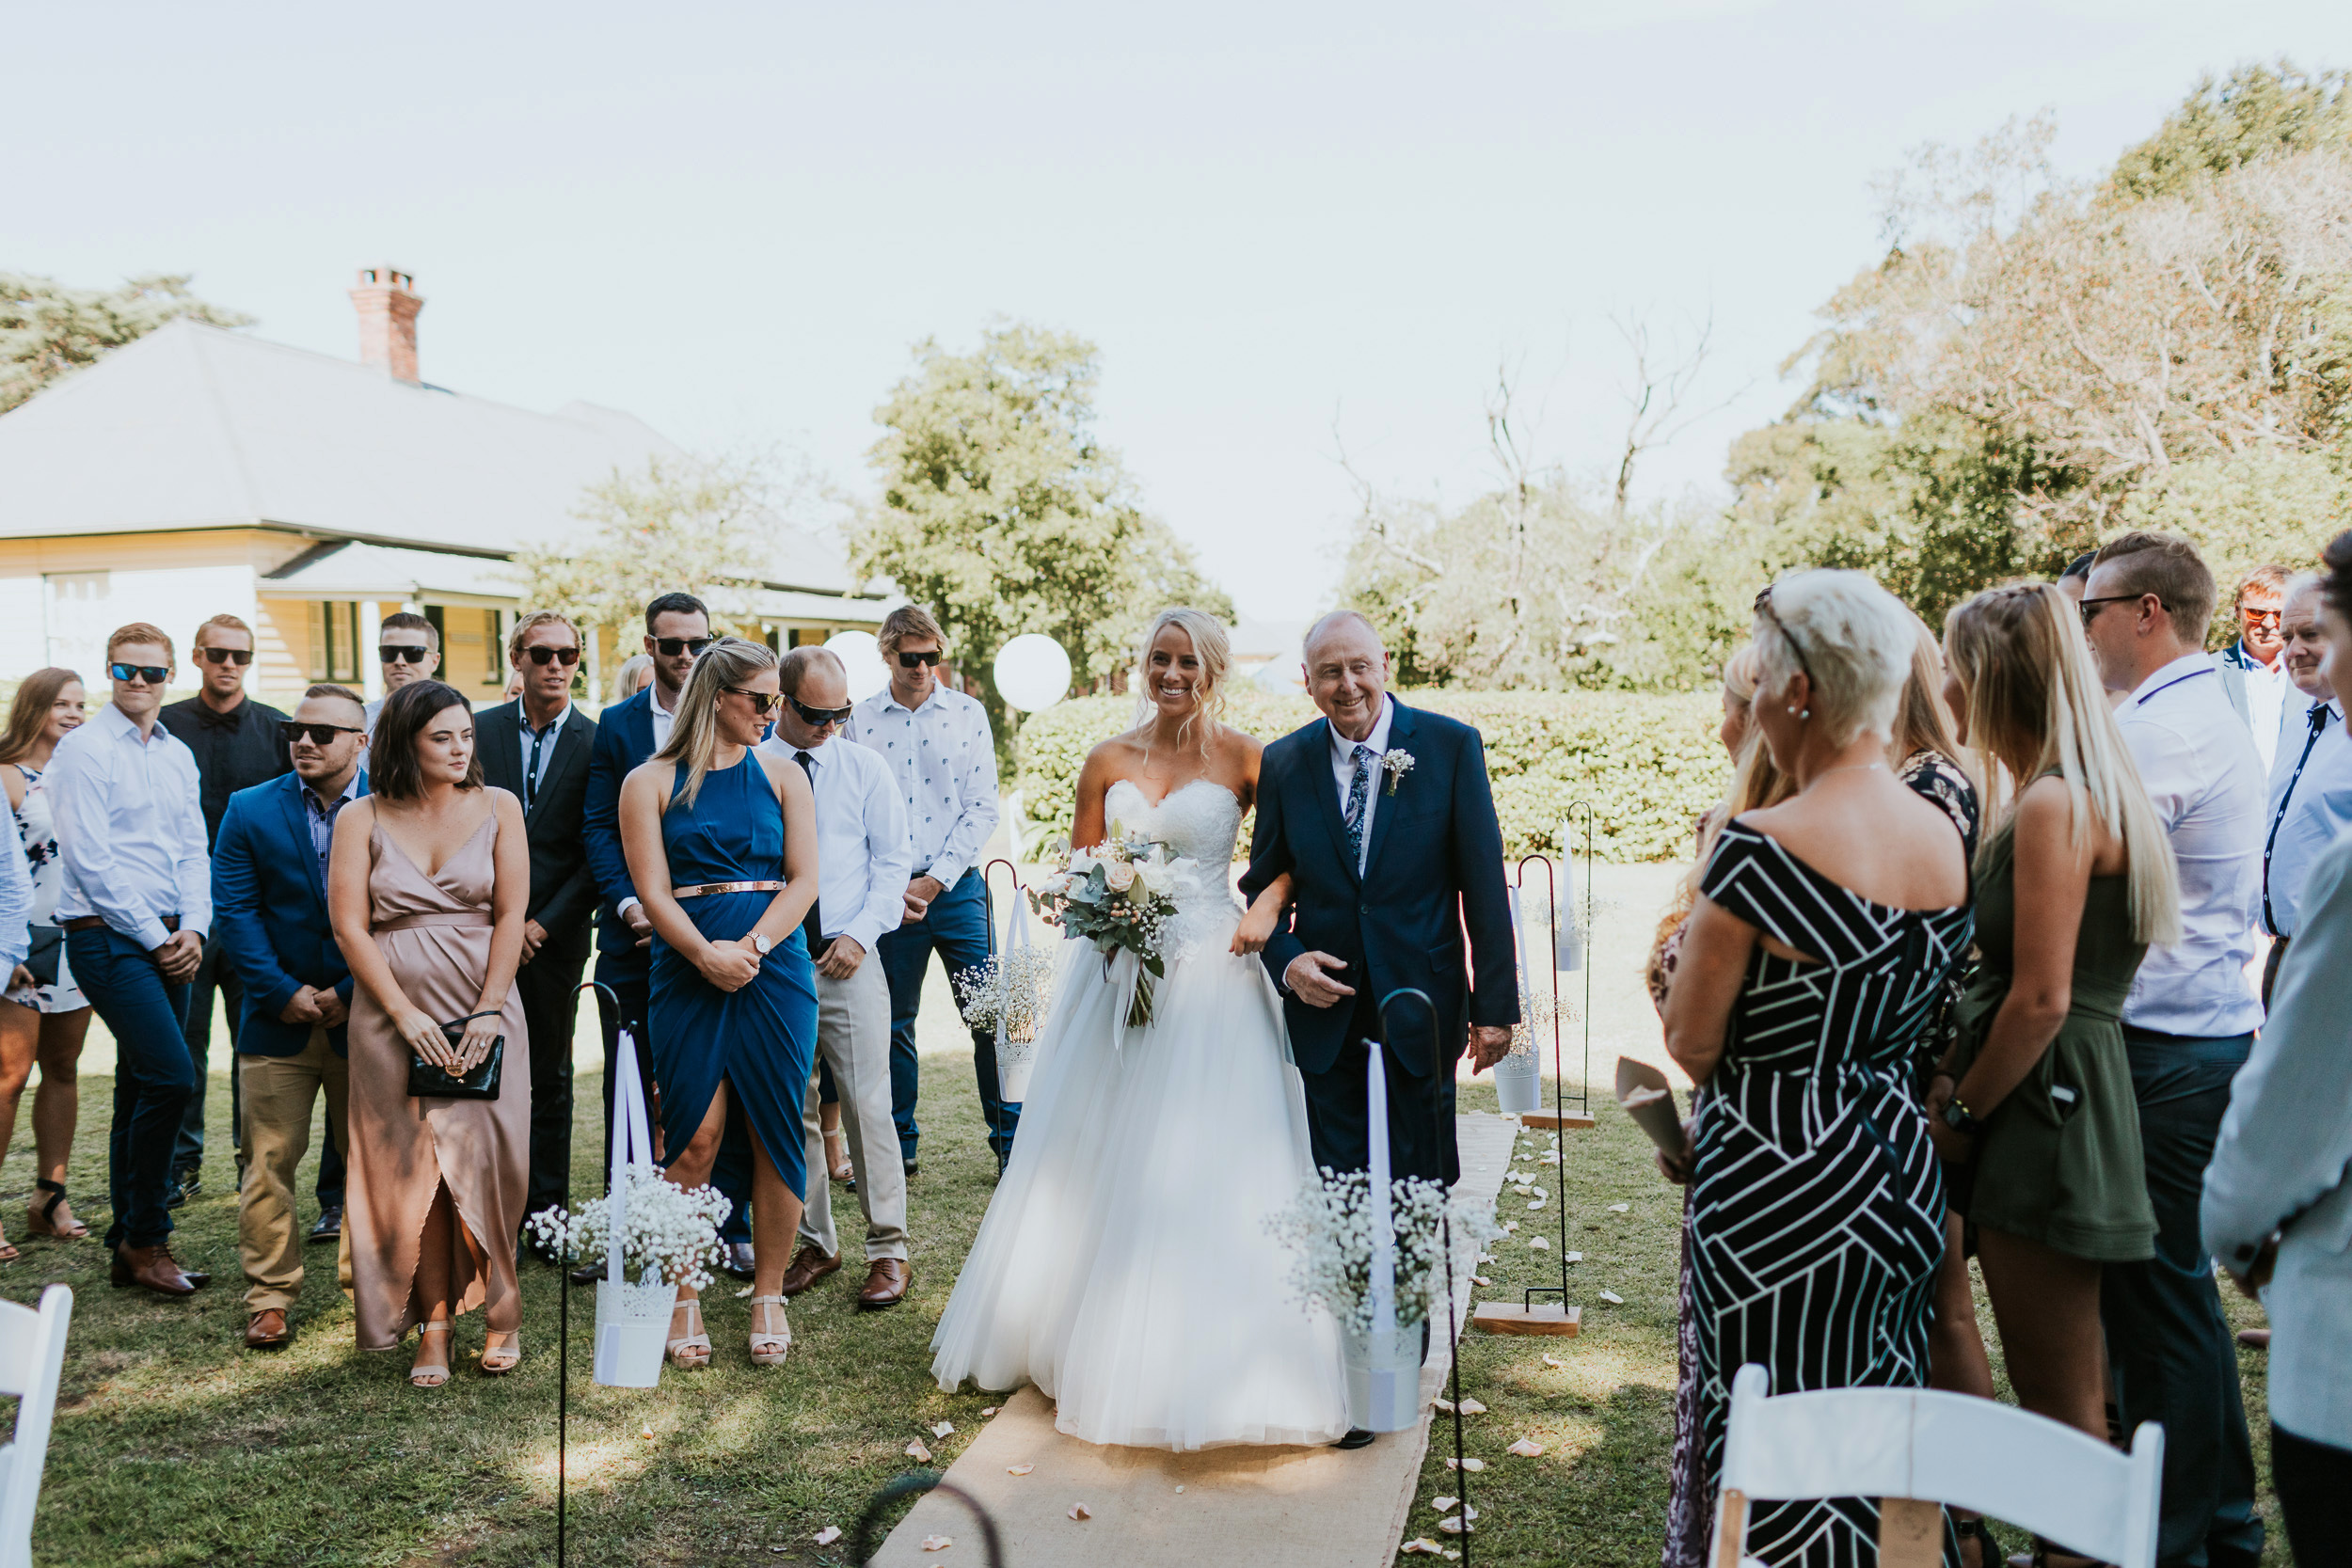 20170311 - Holly & Dan Coolangatta Estate Wedding | 102.jpg